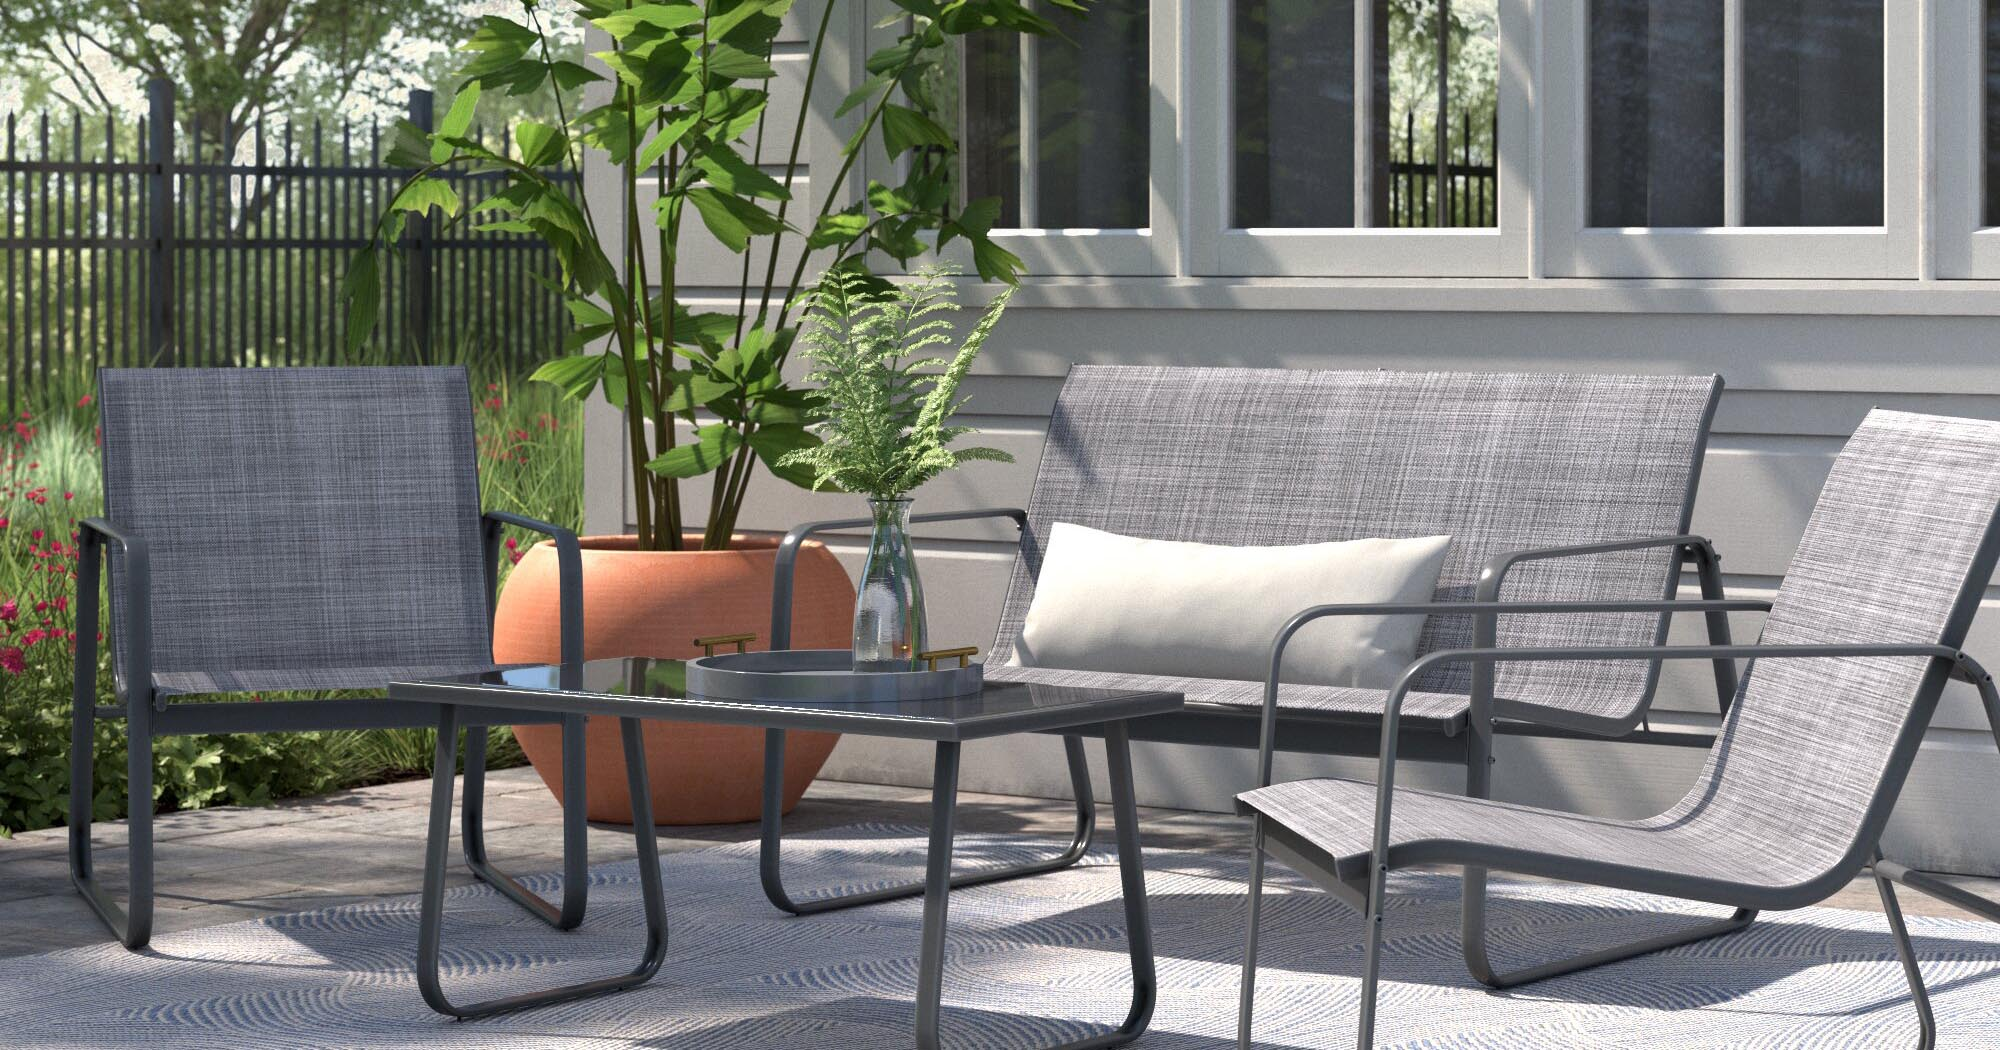 19 small balcony furniture ideas that